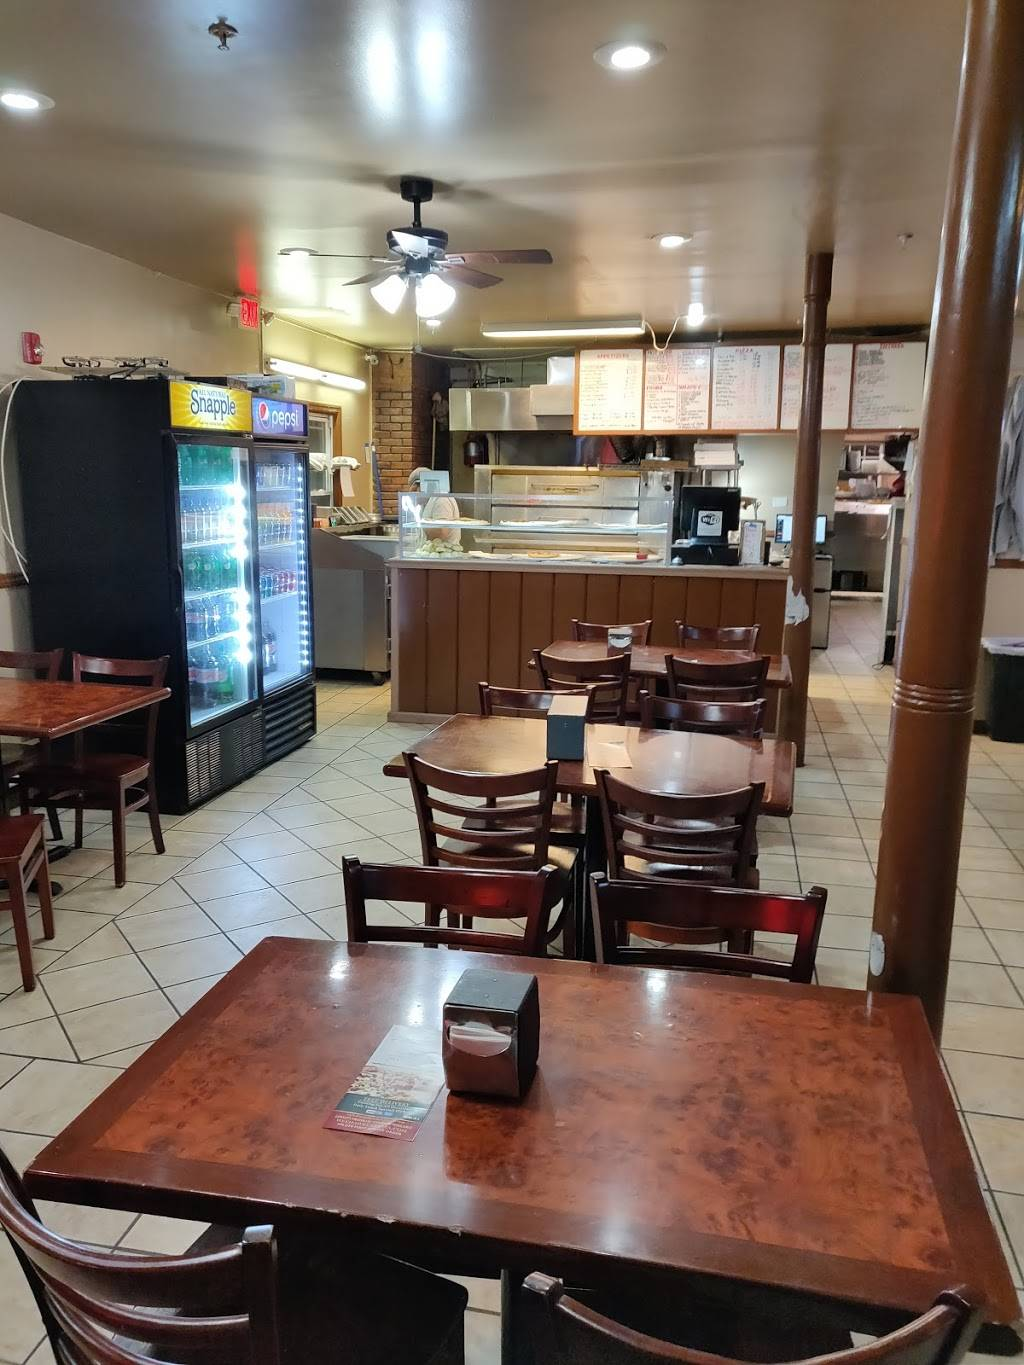 Anthonys Pizza & Restaurant | meal delivery | 4101 Park Ave, Union City, NJ 07087, USA | 2017587454 OR +1 201-758-7454